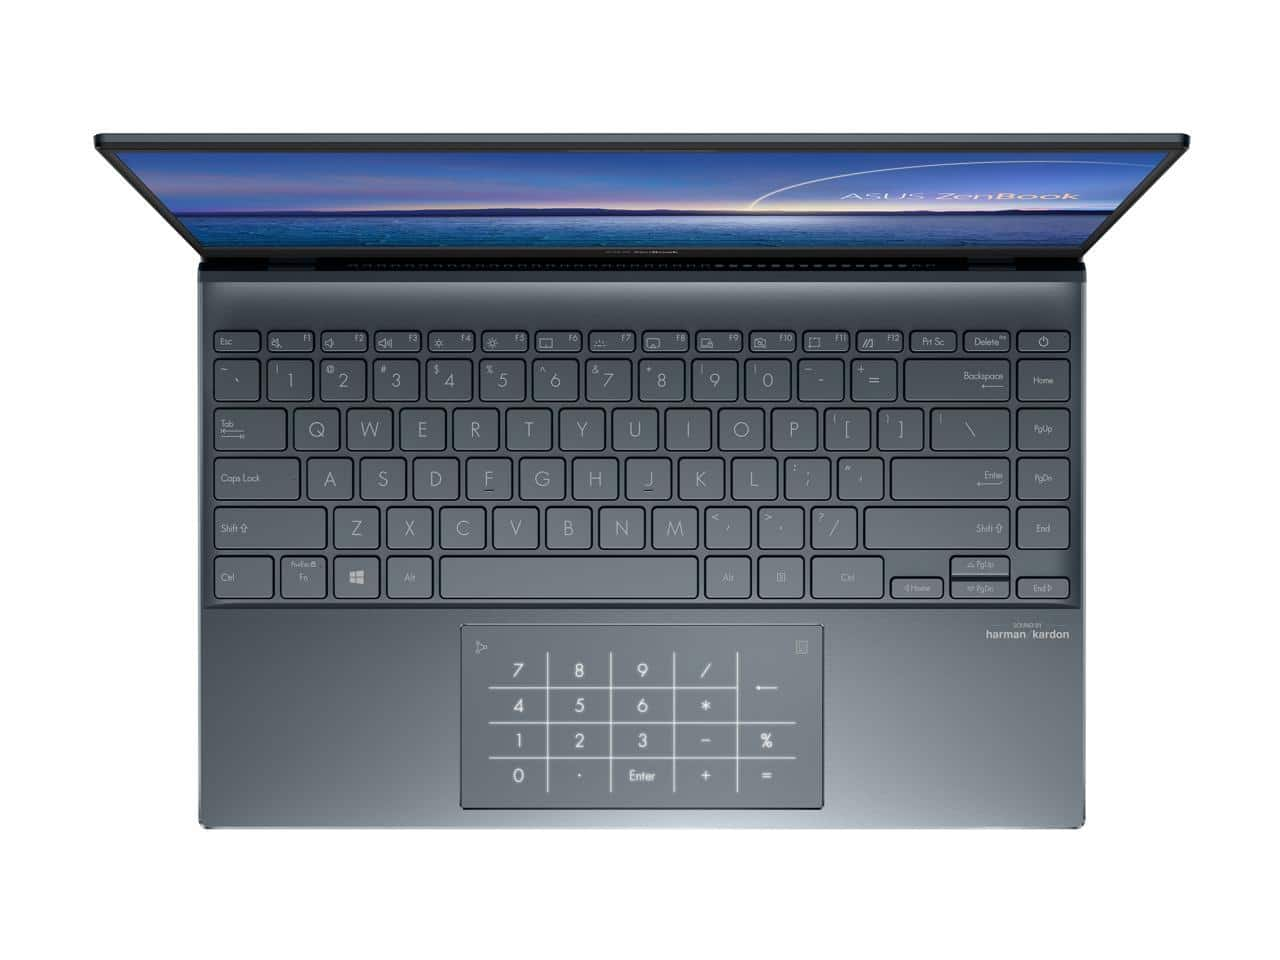 All new Asus Zenbook Ultra 14: 14'' FHD IPS, Ryzen 7 4700U, 16GB DDR4, 1TB PCIe SSD, Win10 Pro @ $902 incl Shipping.